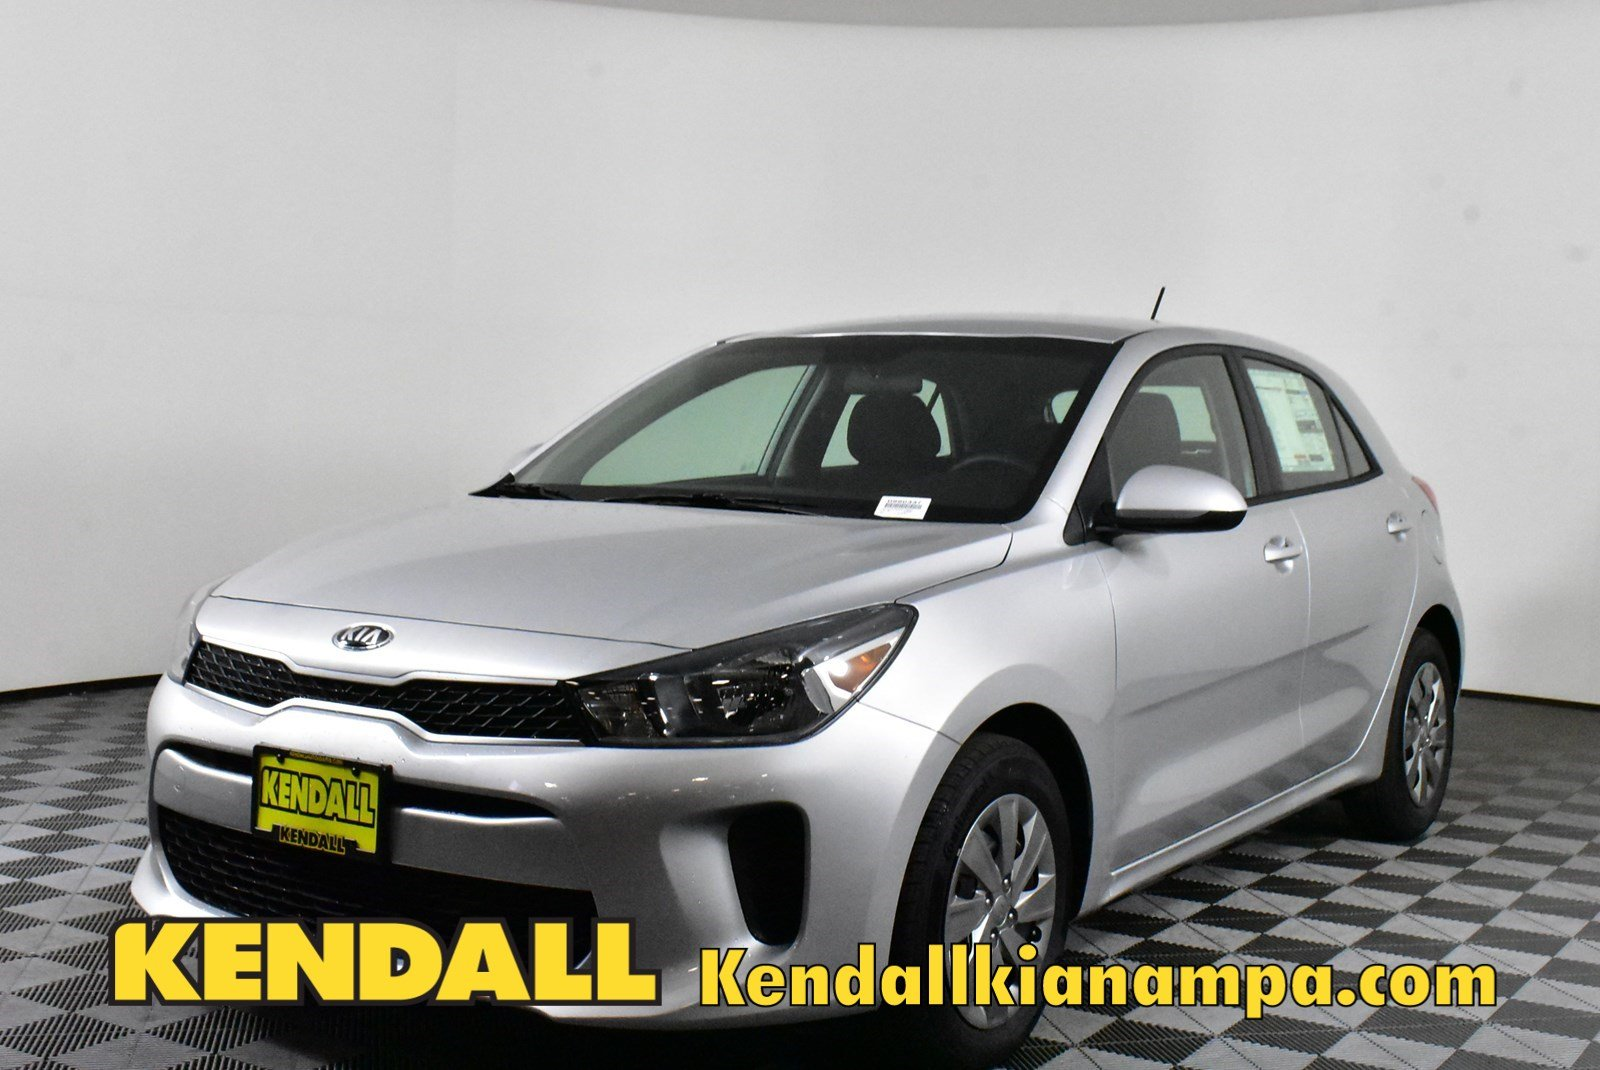 New 2019 Kia Rio 5 Door S In Nampa D990337 Kendall At The Idaho Center Auto Mall